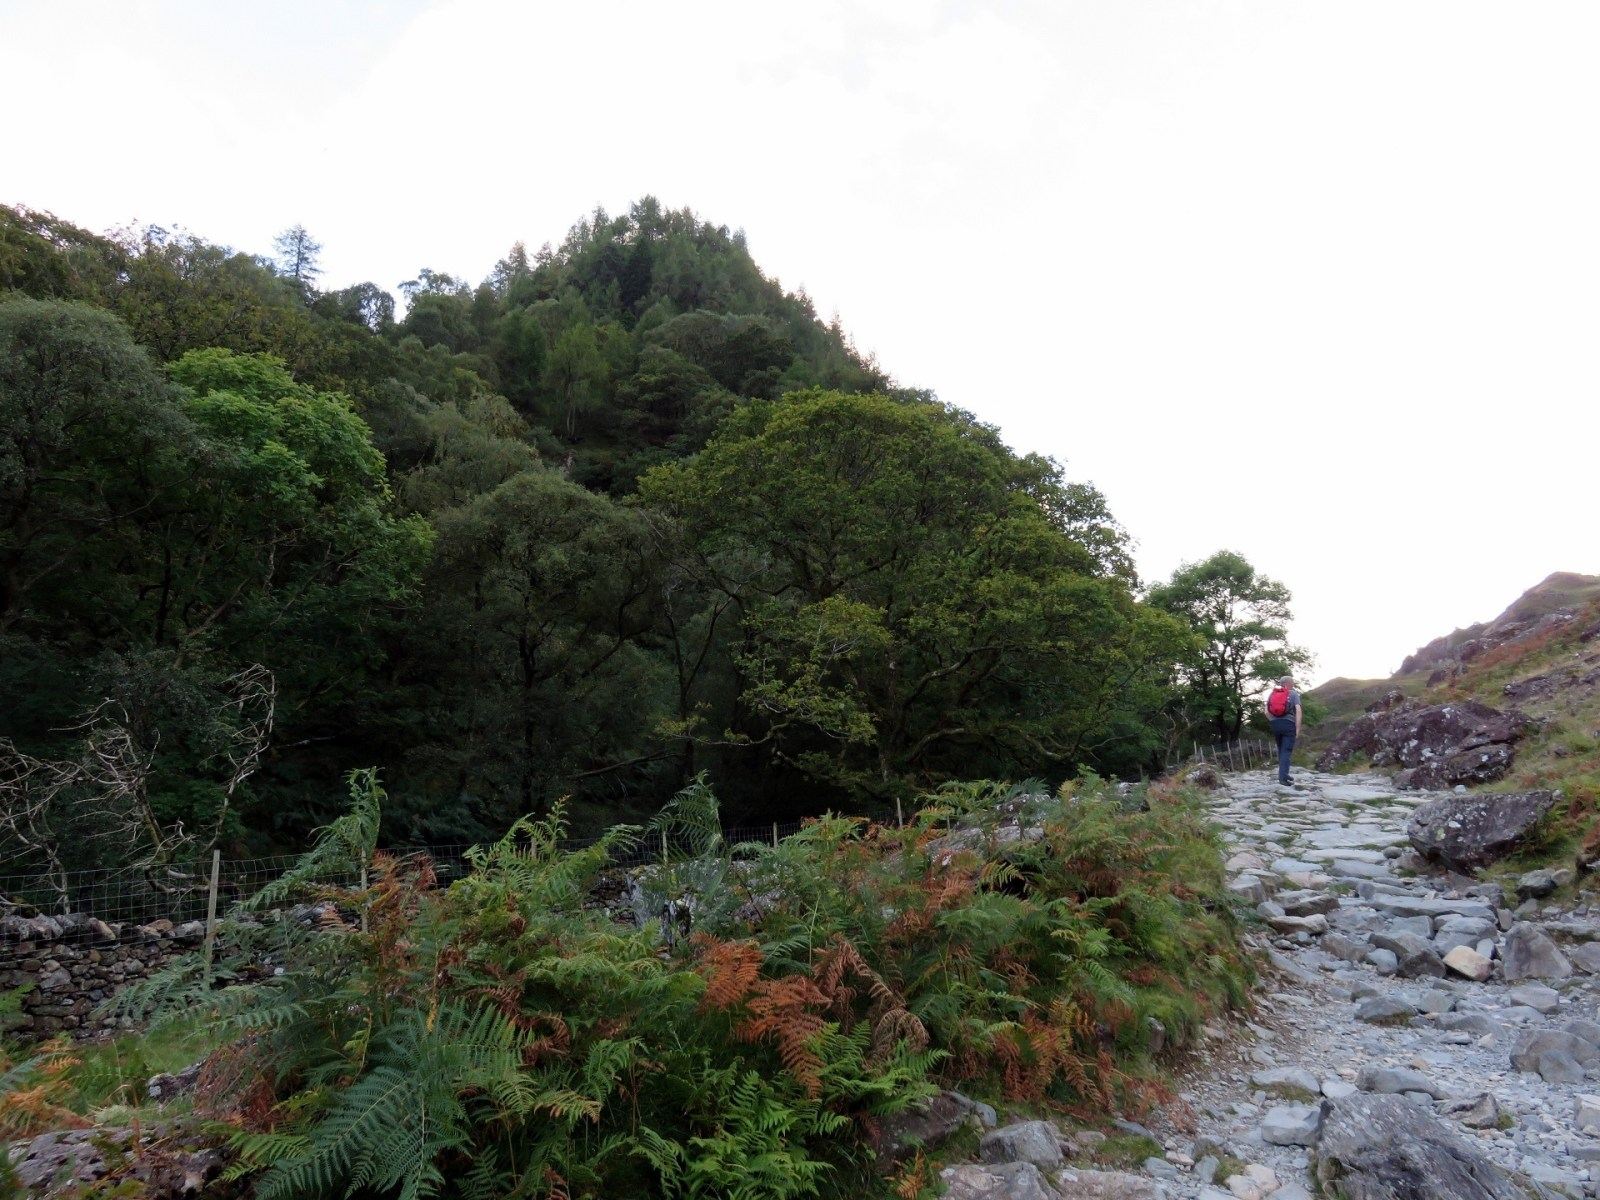 LD - Walk up Castle Crag and Millican's Cave from Grange